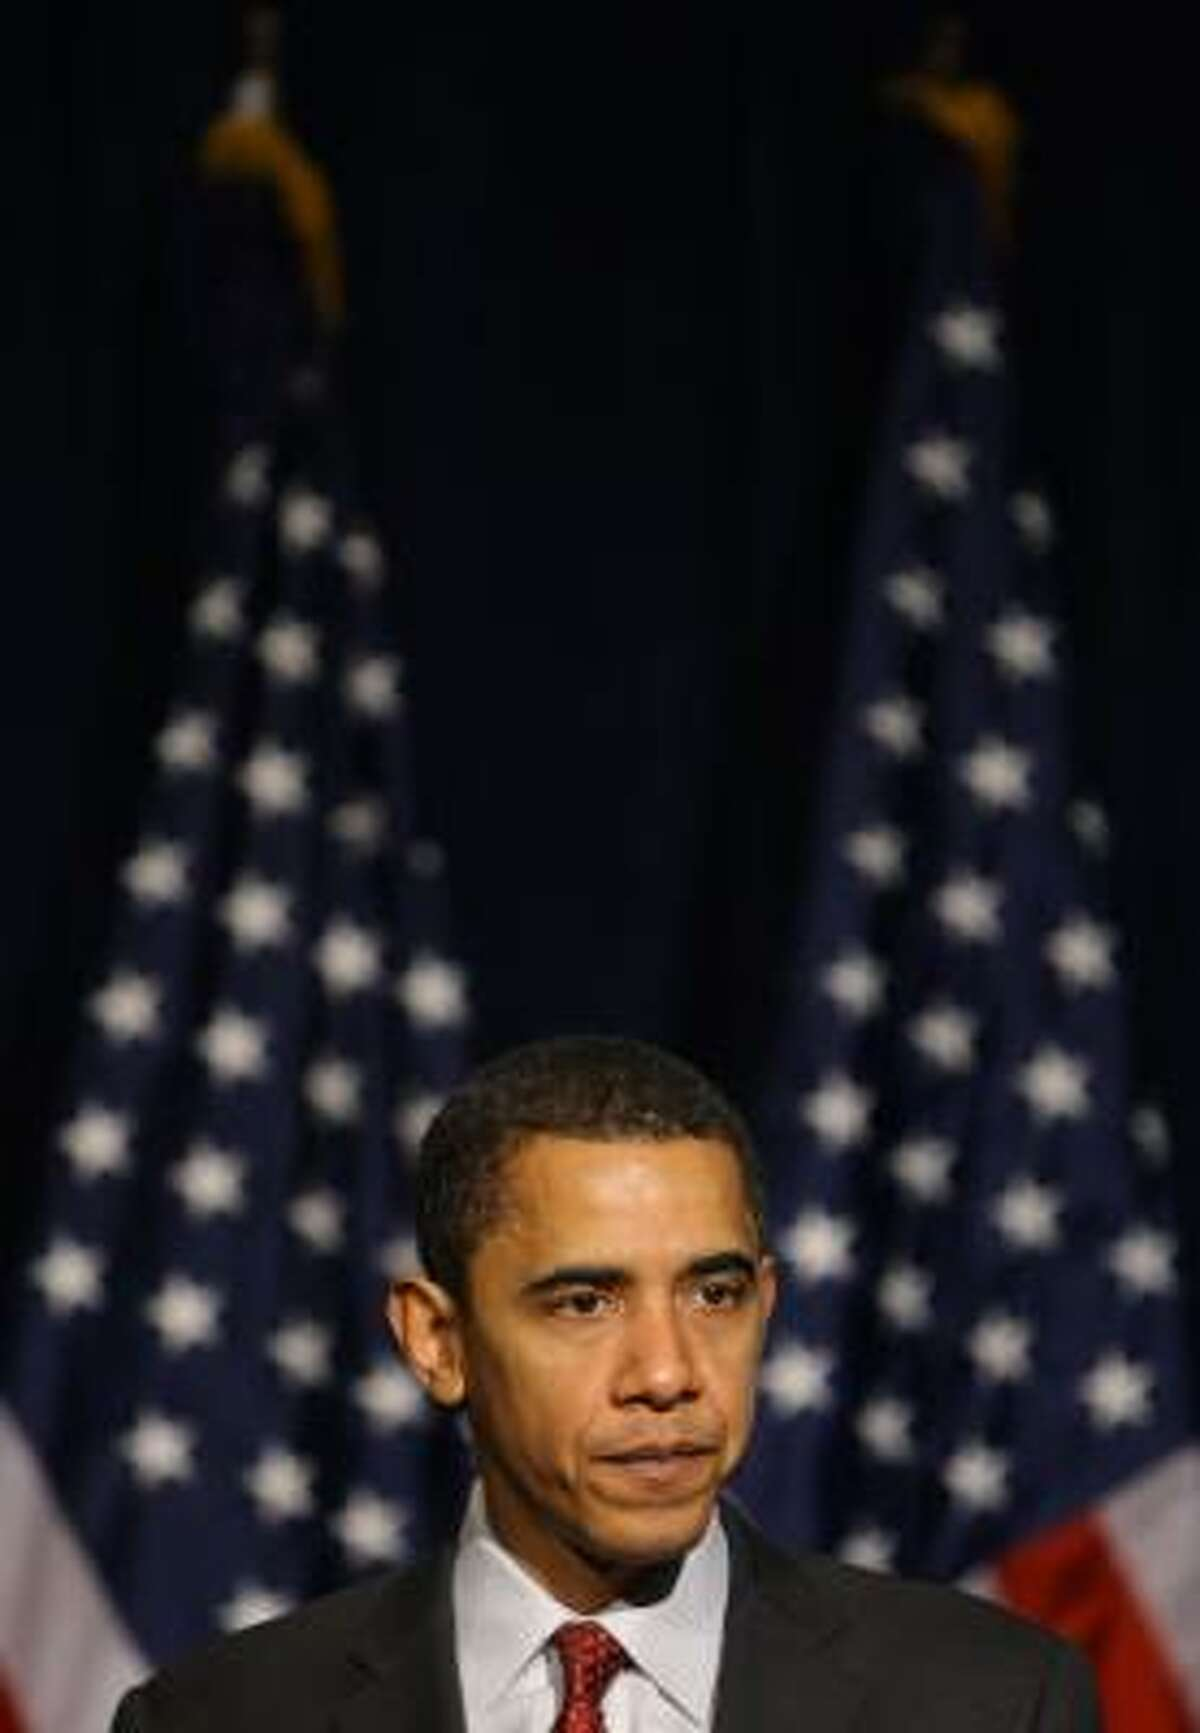 Barack Obama has tried to dispel rumors that he is not patriotic.